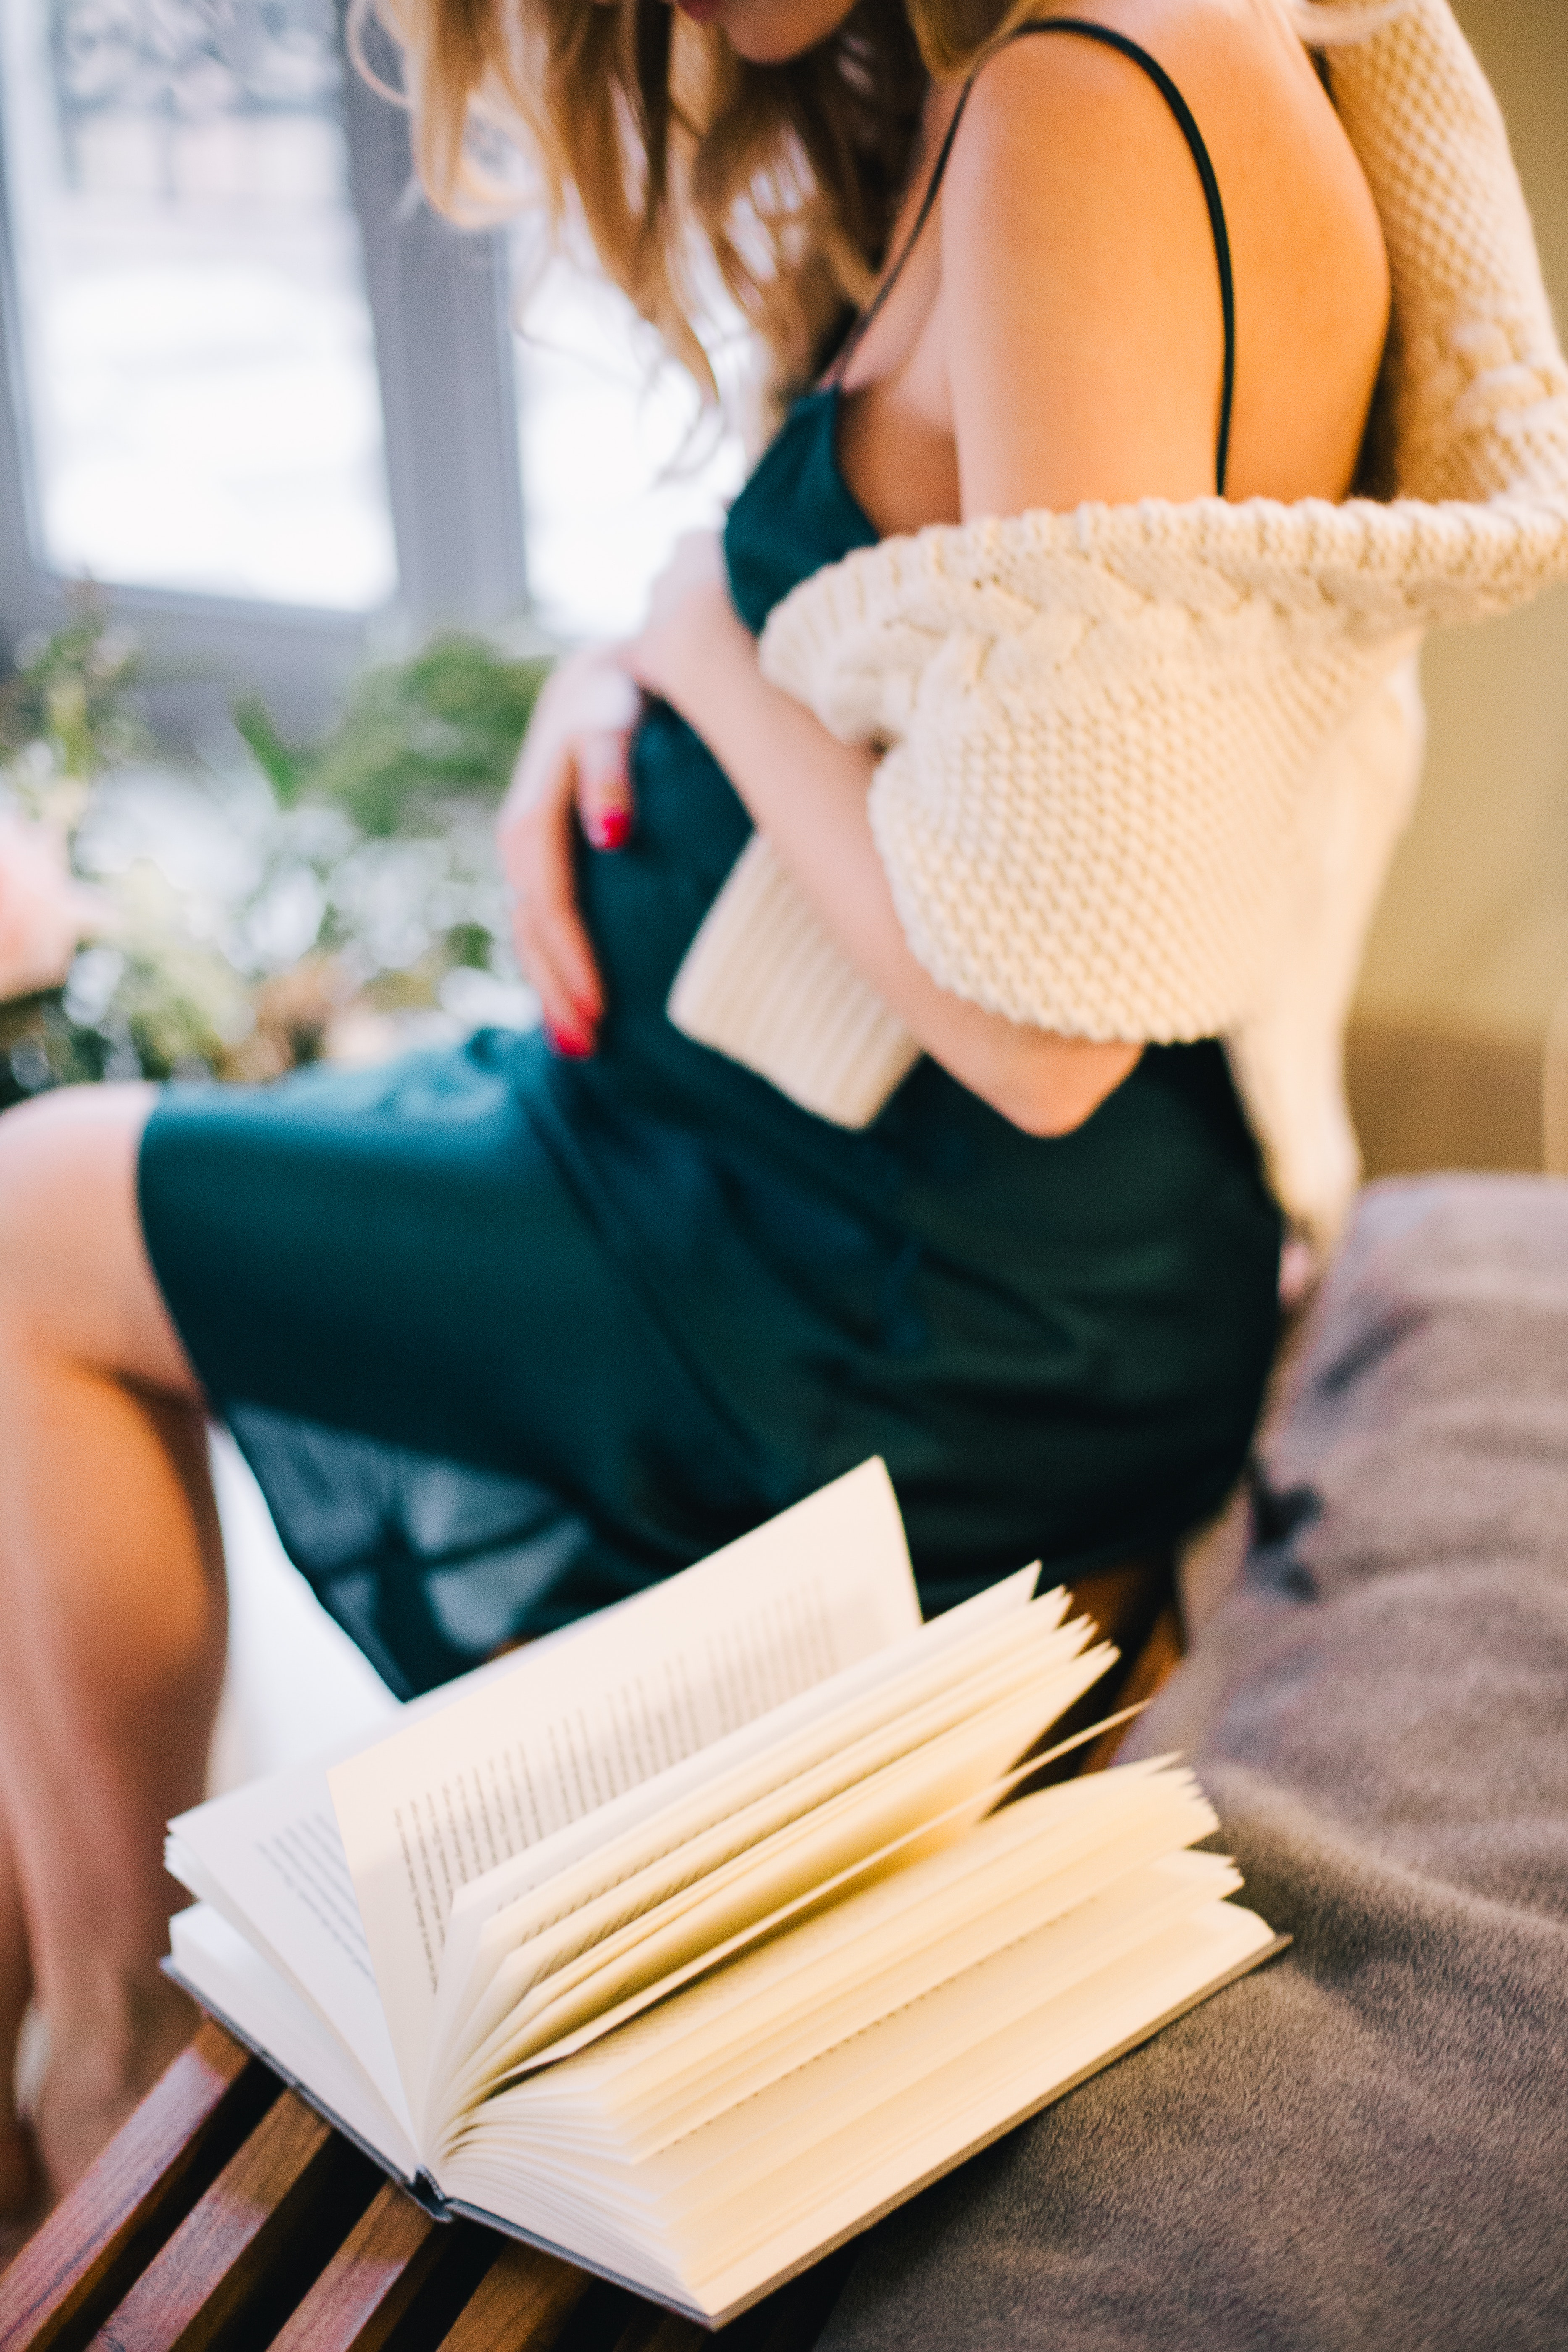 Pregnant woman sitting on a chair beside the book. | Photo: Pexels